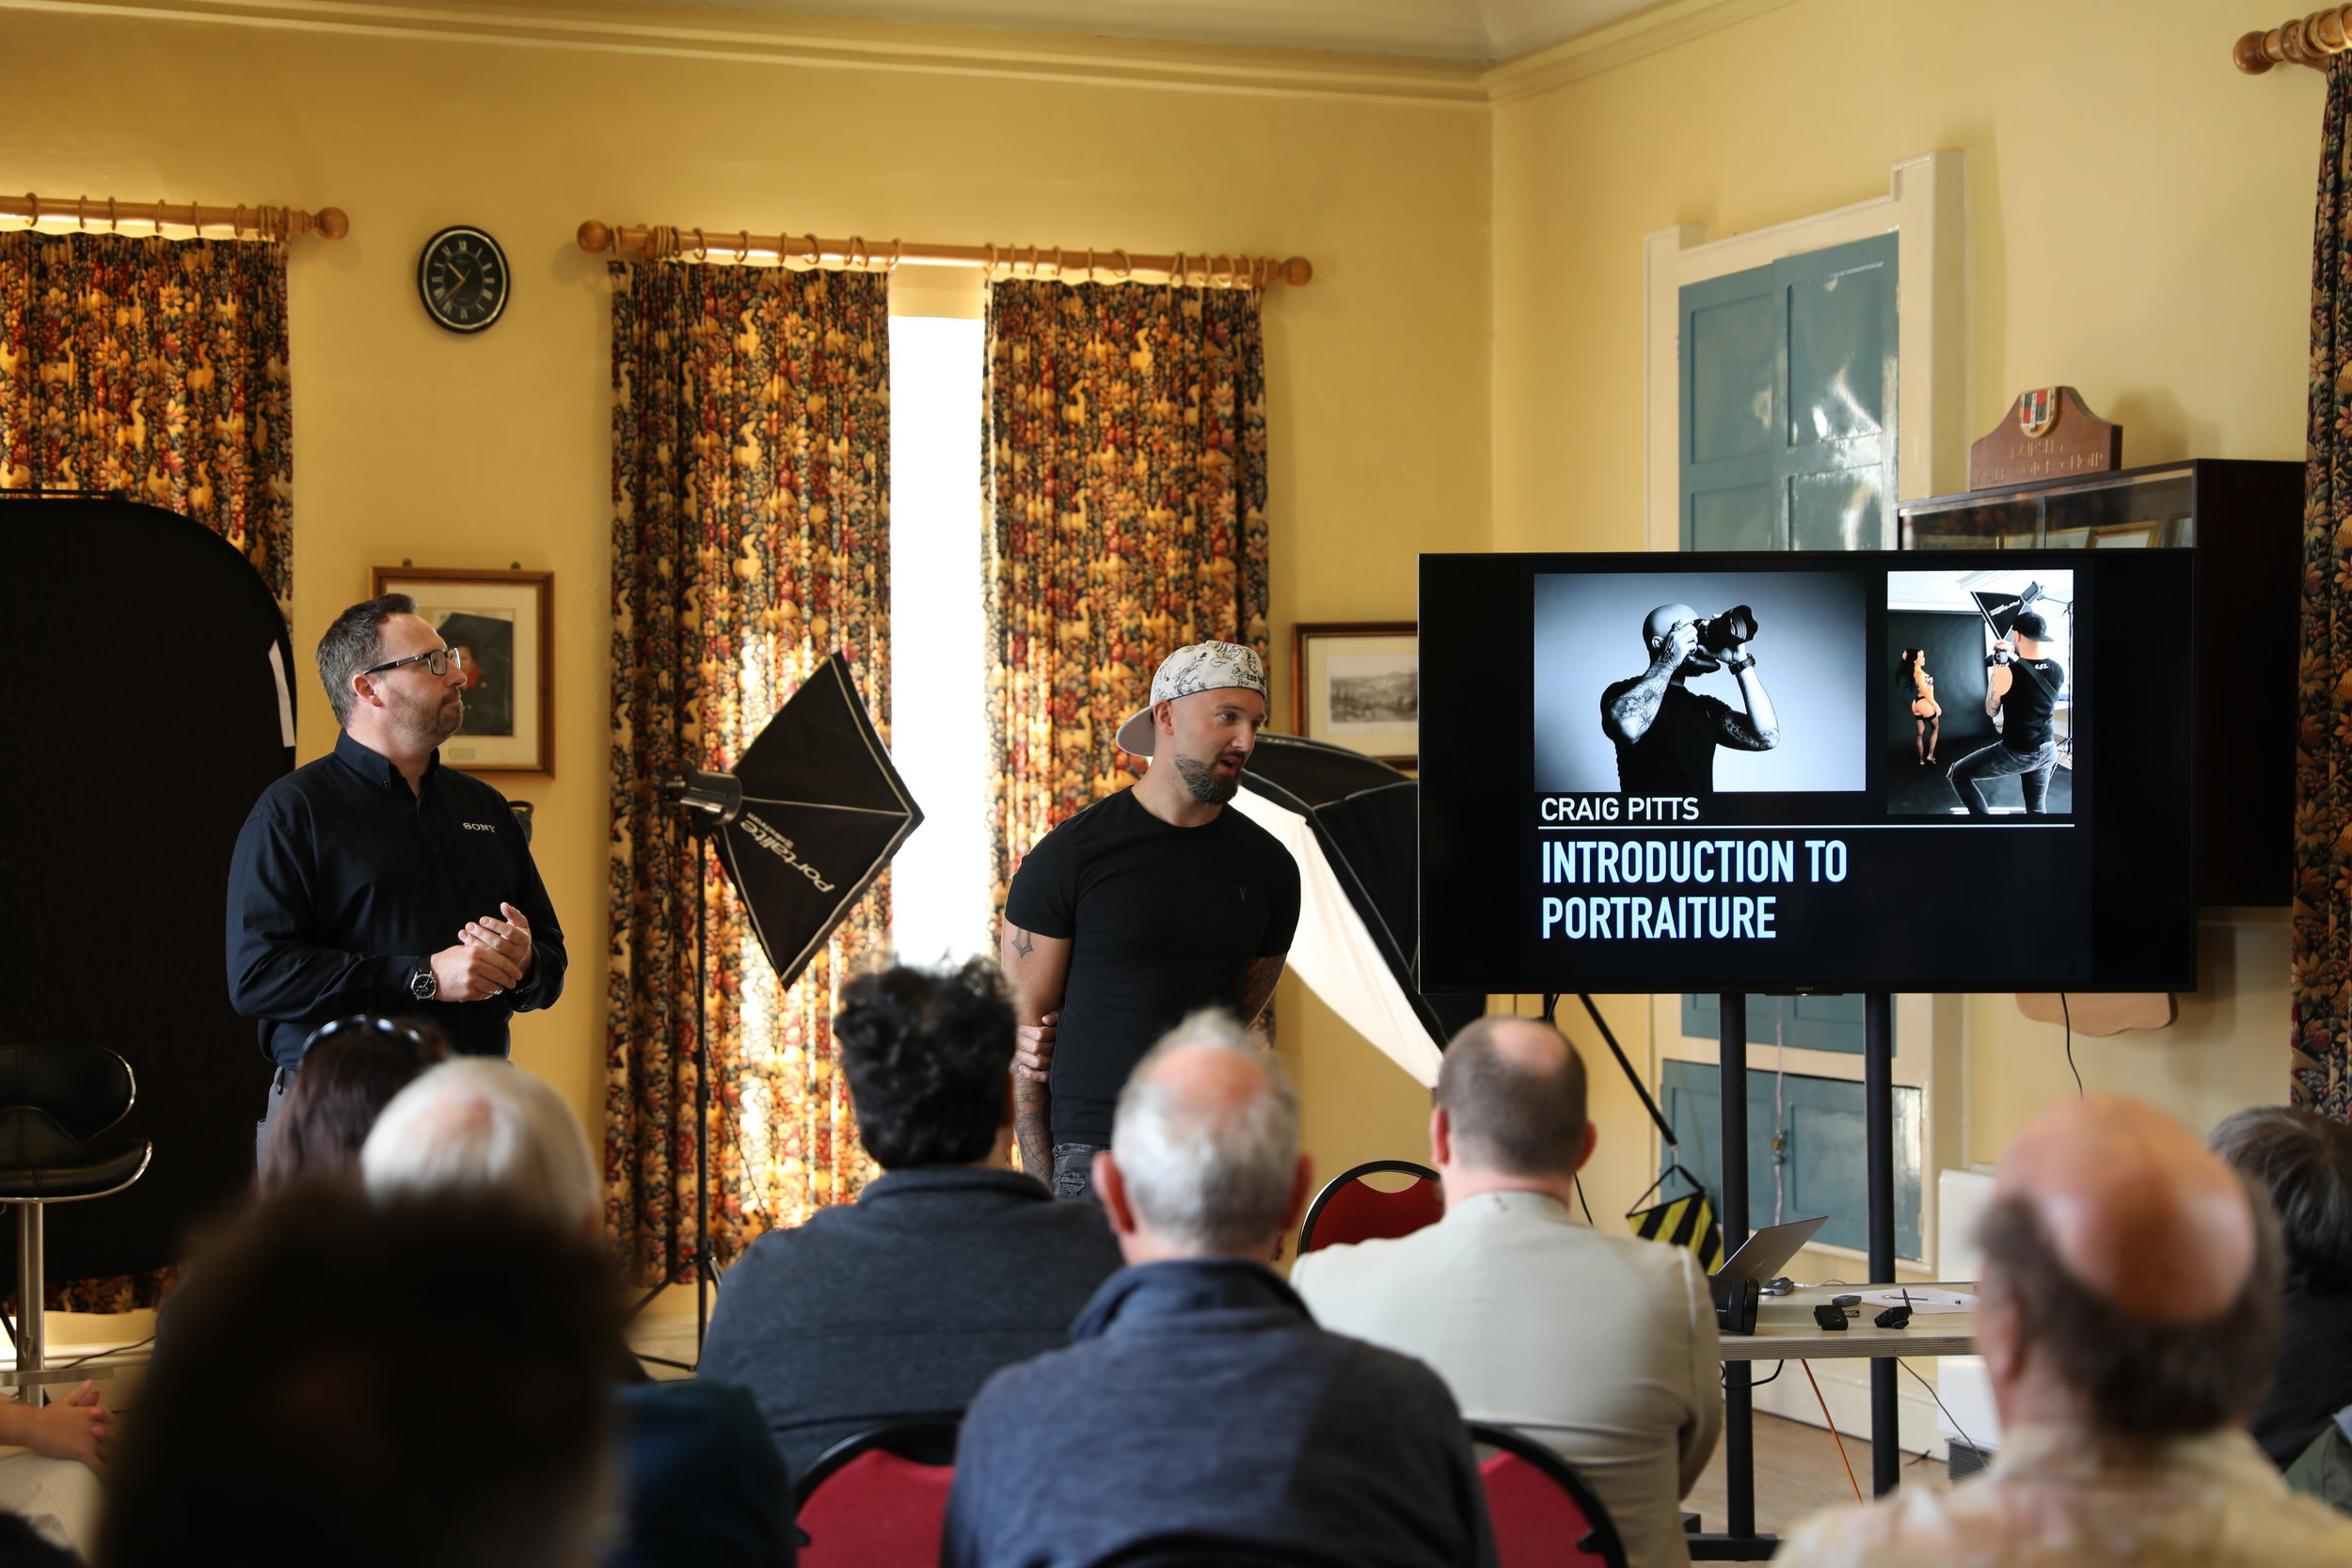 Introduction to Portraiture Workshop hosted by Clifton Cameras & Sony UK